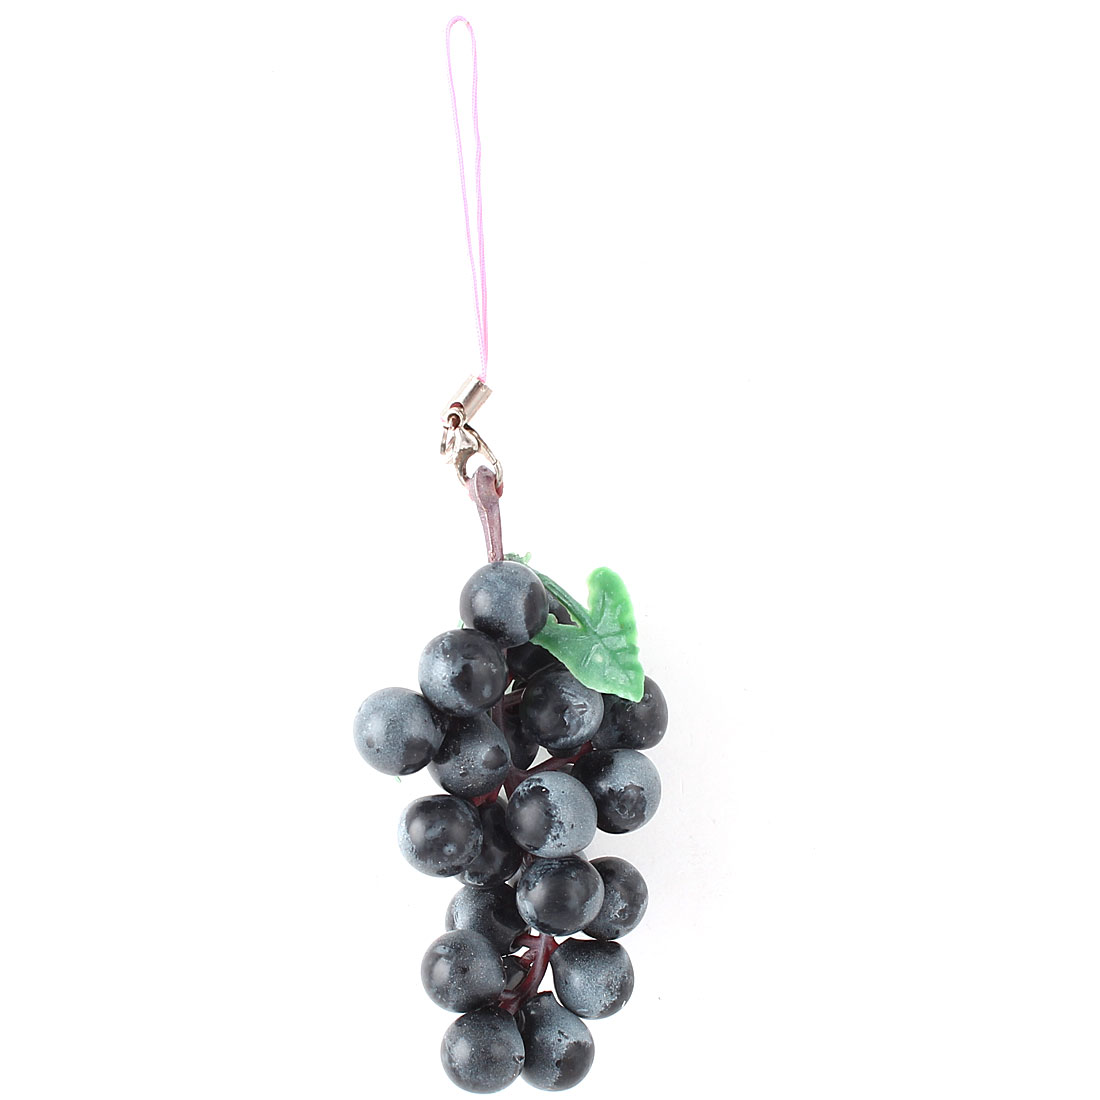 Simulation Black Grapes Shaped Pendant Strap Cellphone Purse Handbag Decor